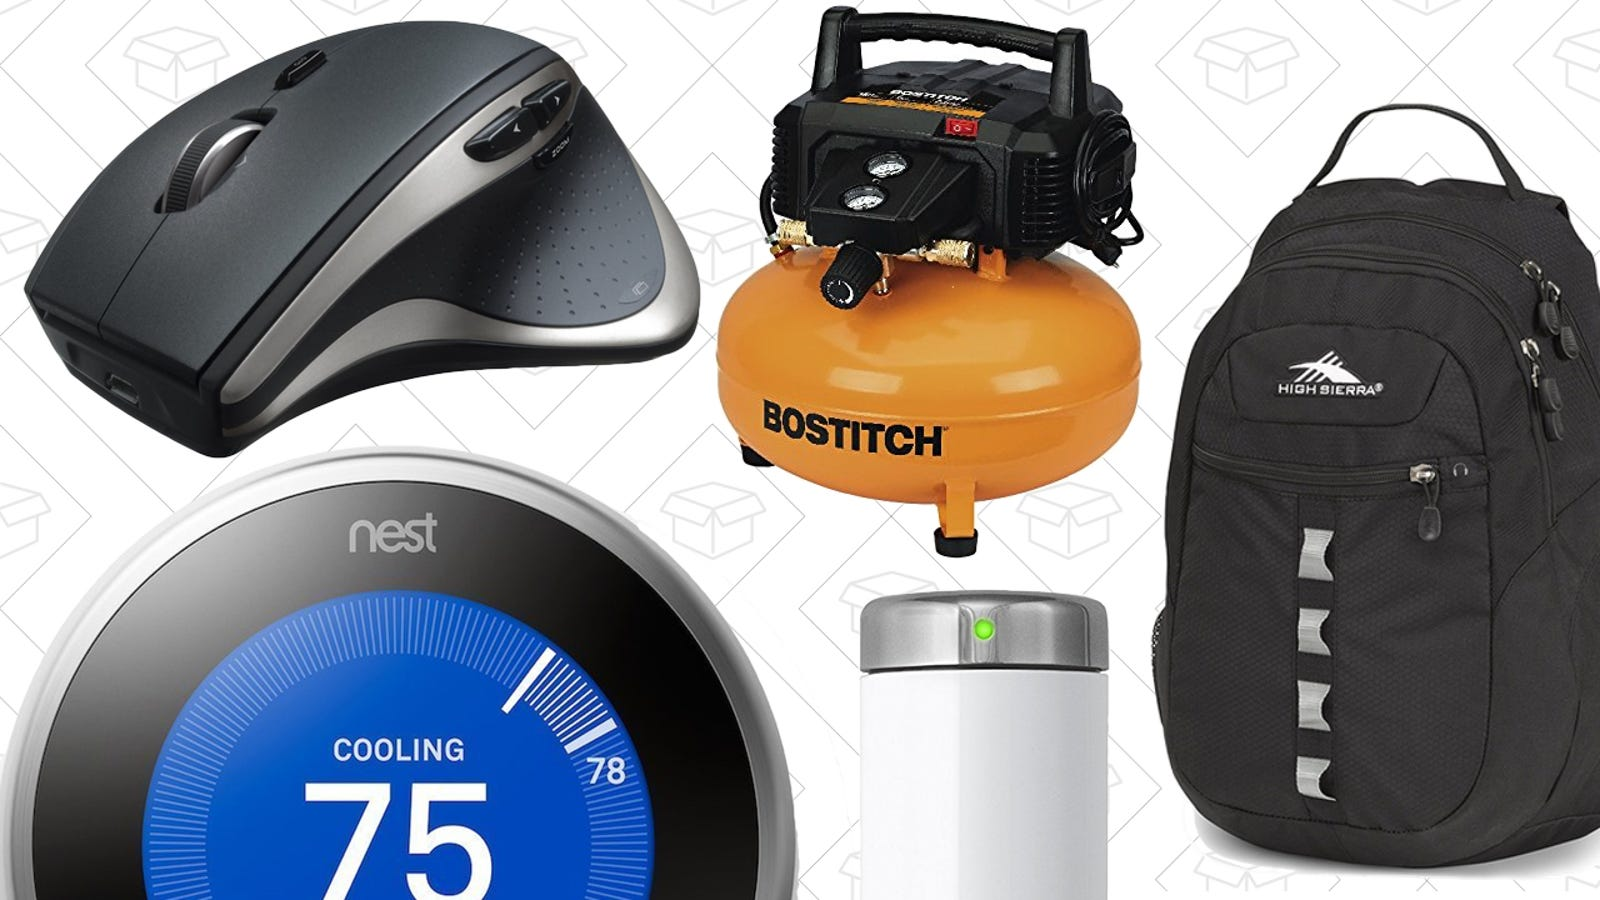 Todays best deals early prime day logitech gold box high sierra todays best deals early prime day logitech gold box high sierra bags and more fandeluxe Gallery